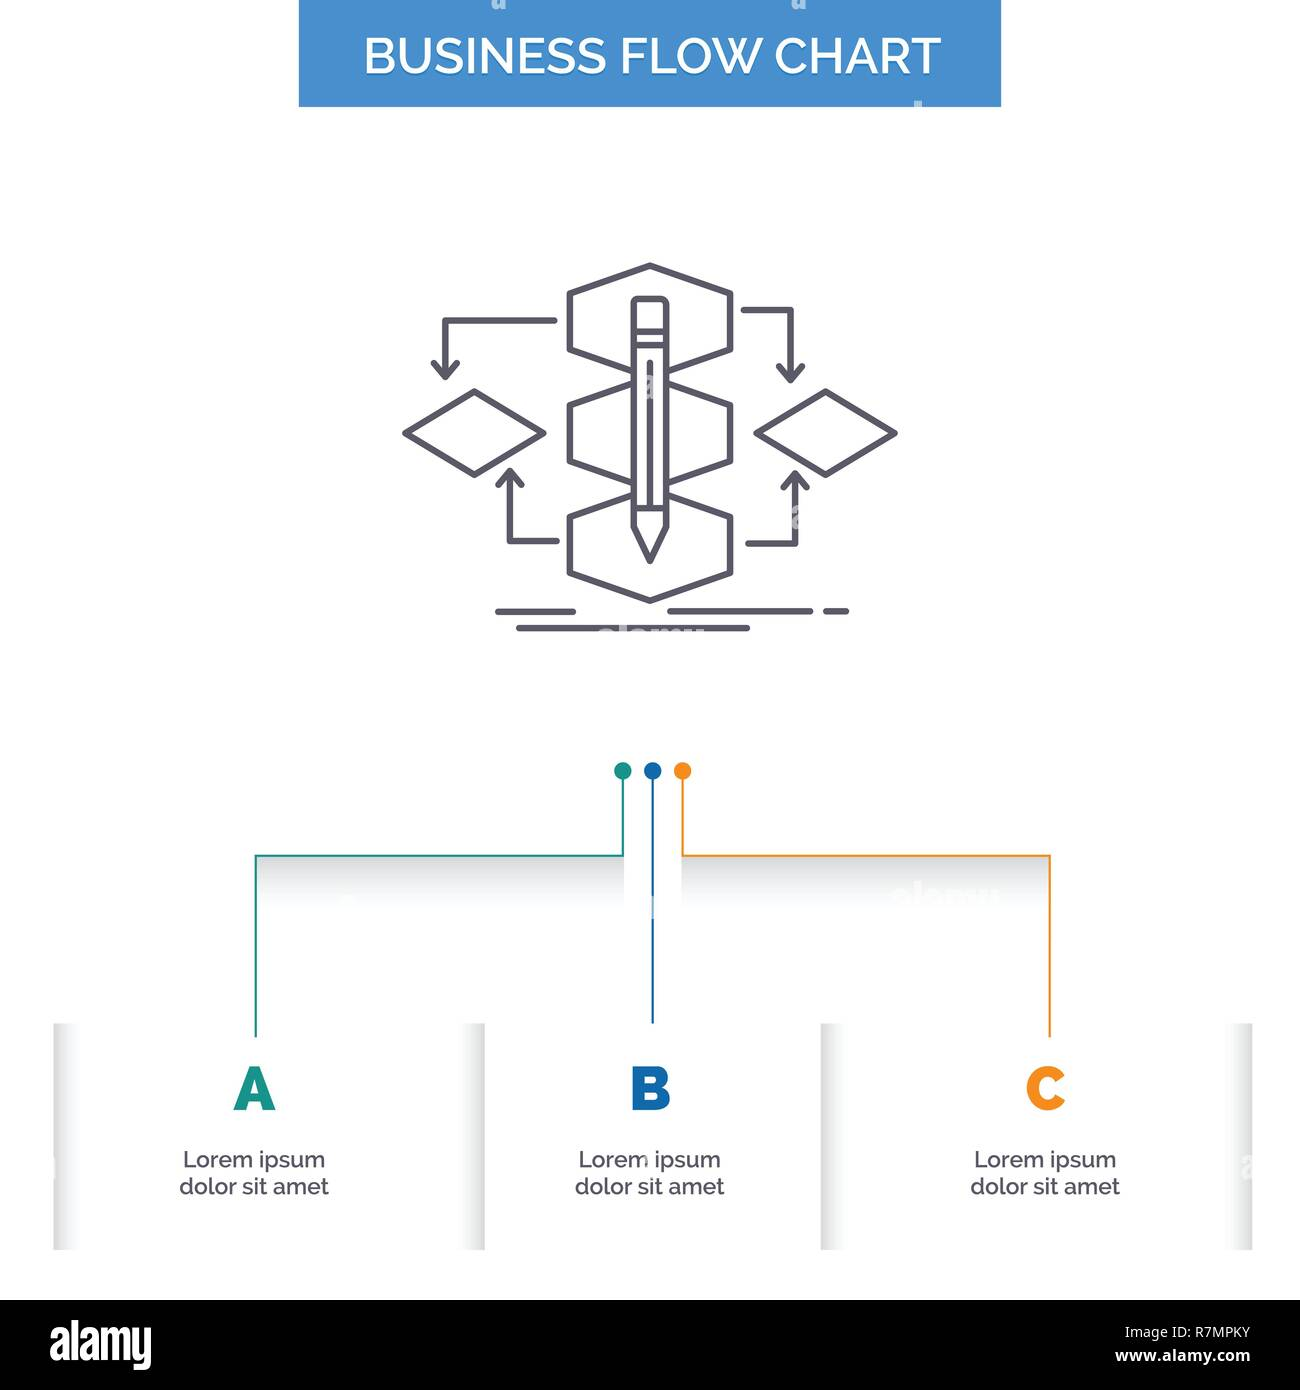 hight resolution of algorithm design method model process business flow chart design with 3 steps line icon for presentation background template place for text